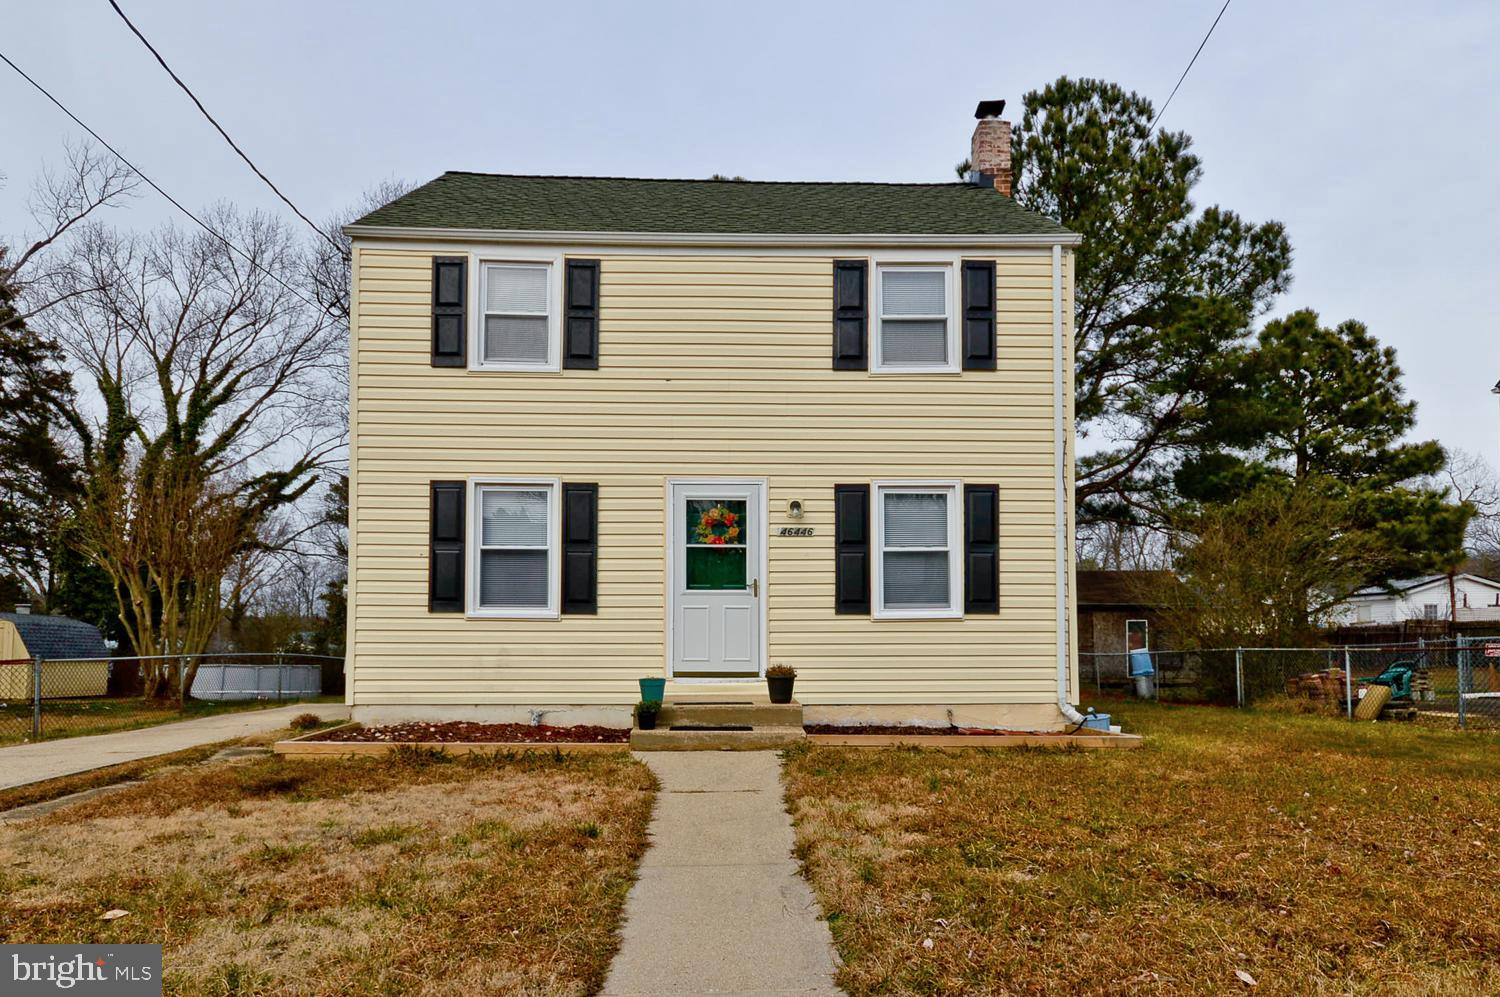 Property is being sold AS IS.  Very well maintained - minimum wear and tear. Move-in ready. Laminate